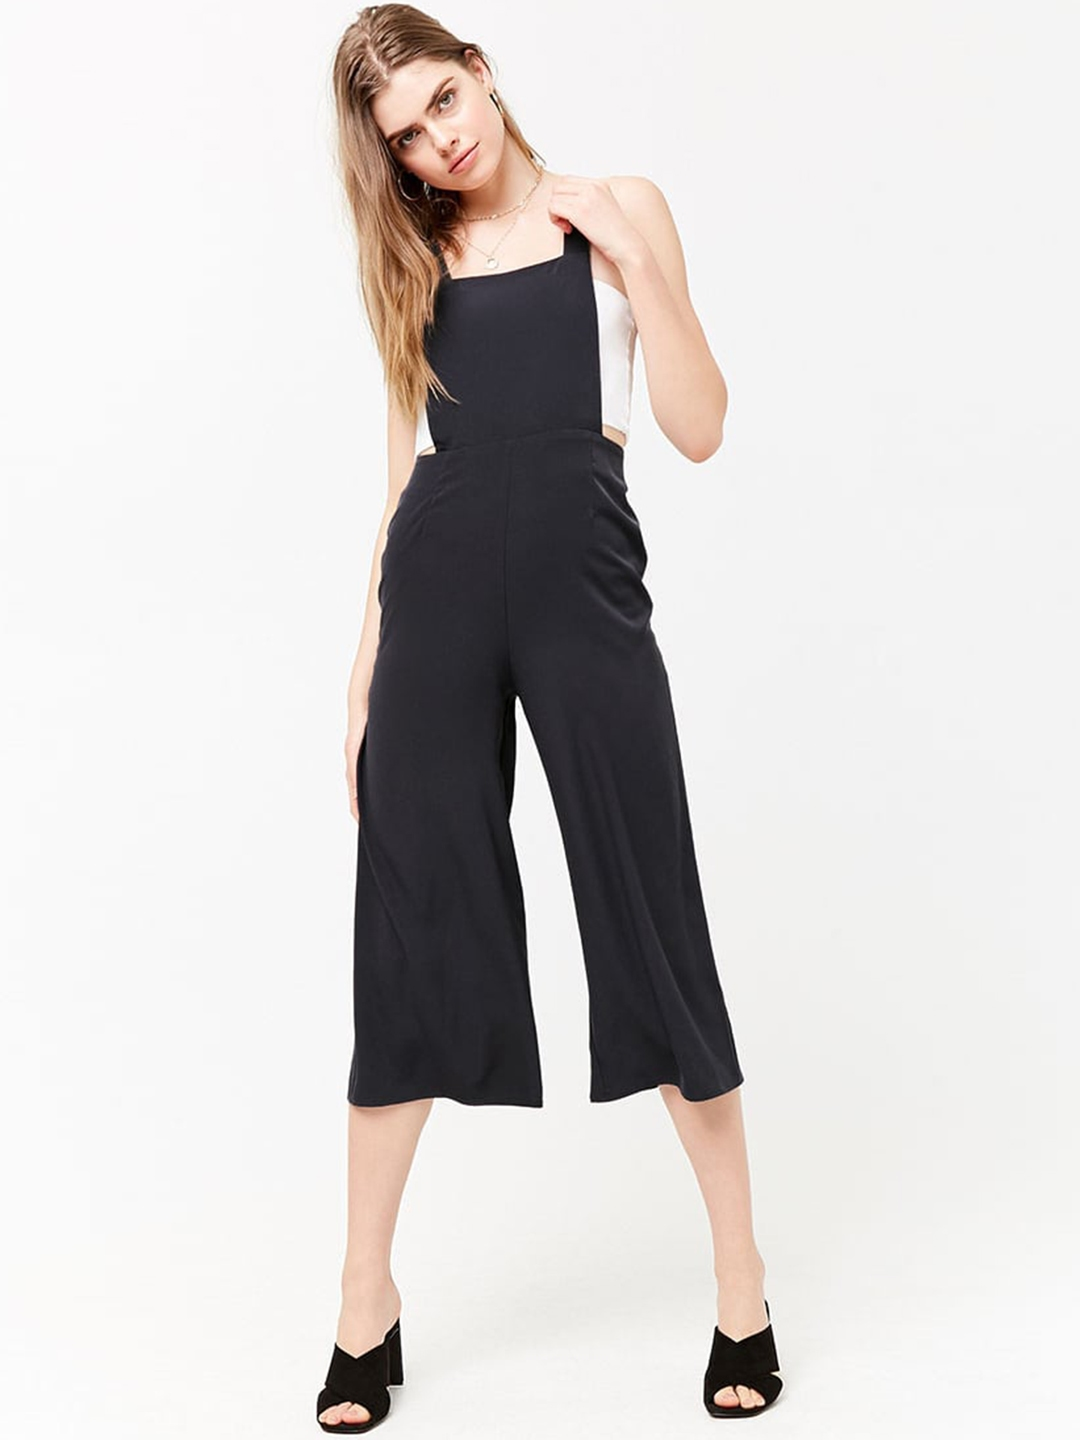 63c34ae61d2 Buy FOREVER 21 Women Black Solid Culotte Jumpsuit - Jumpsuit for ...